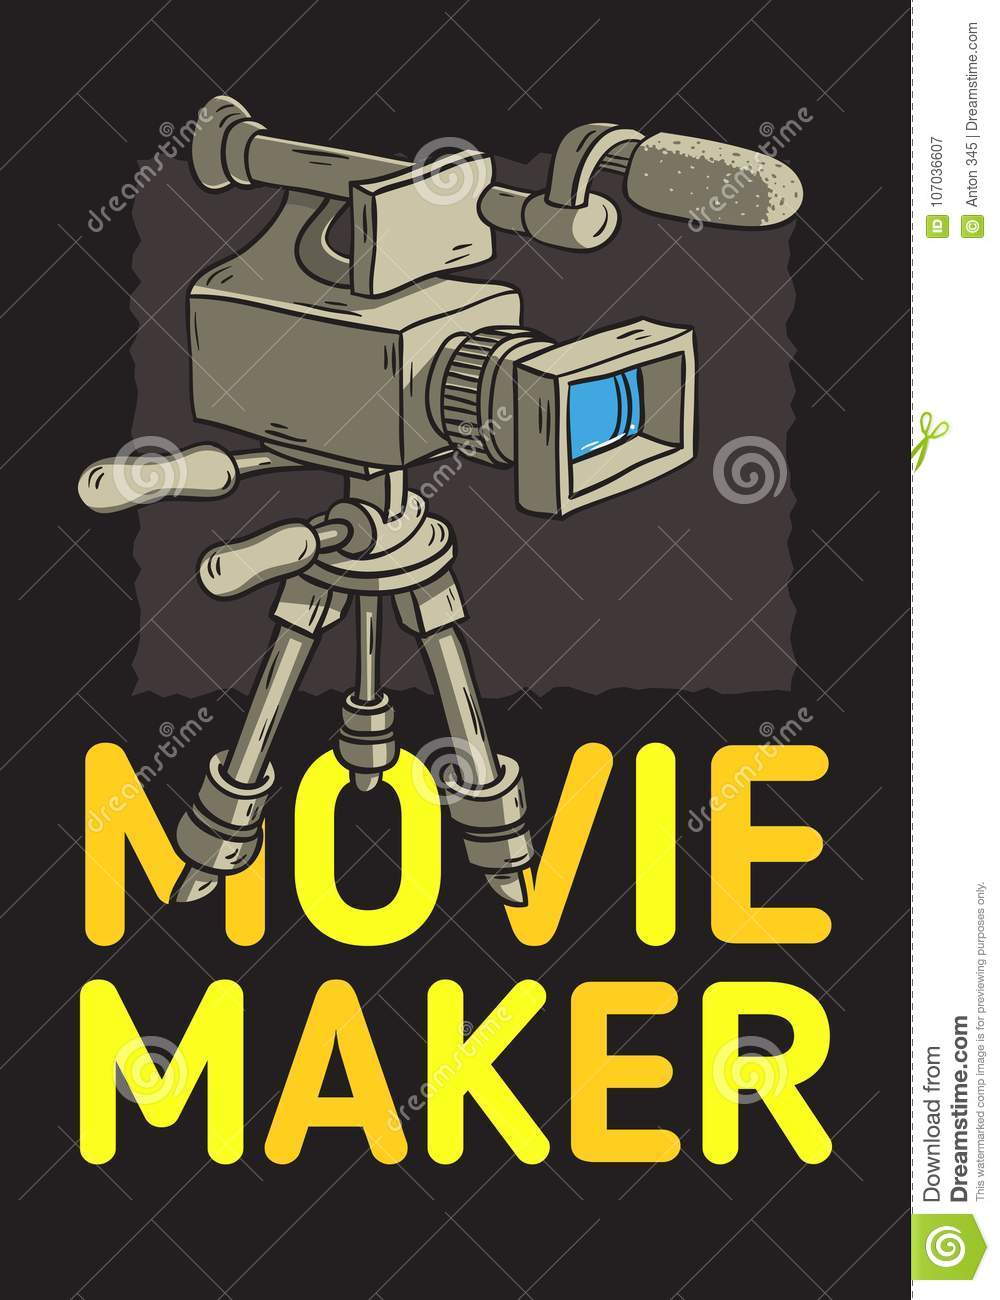 Line Art Generator From Image : Play maker cartoons illustrations vector stock images